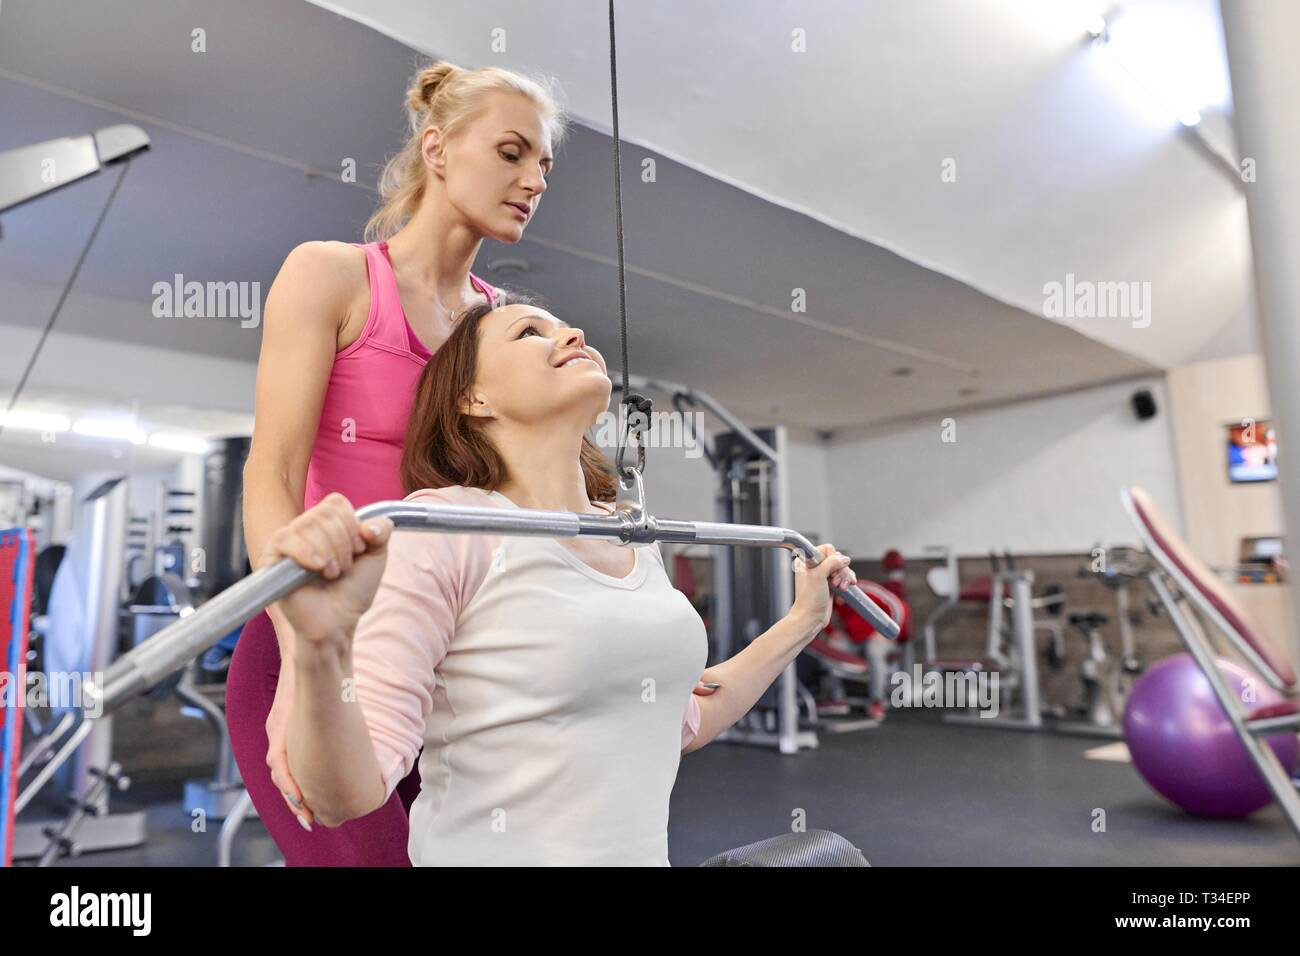 Personal fitness instructor helping summer woman exercising in health club. Health fitness sport age concept. - Stock Image